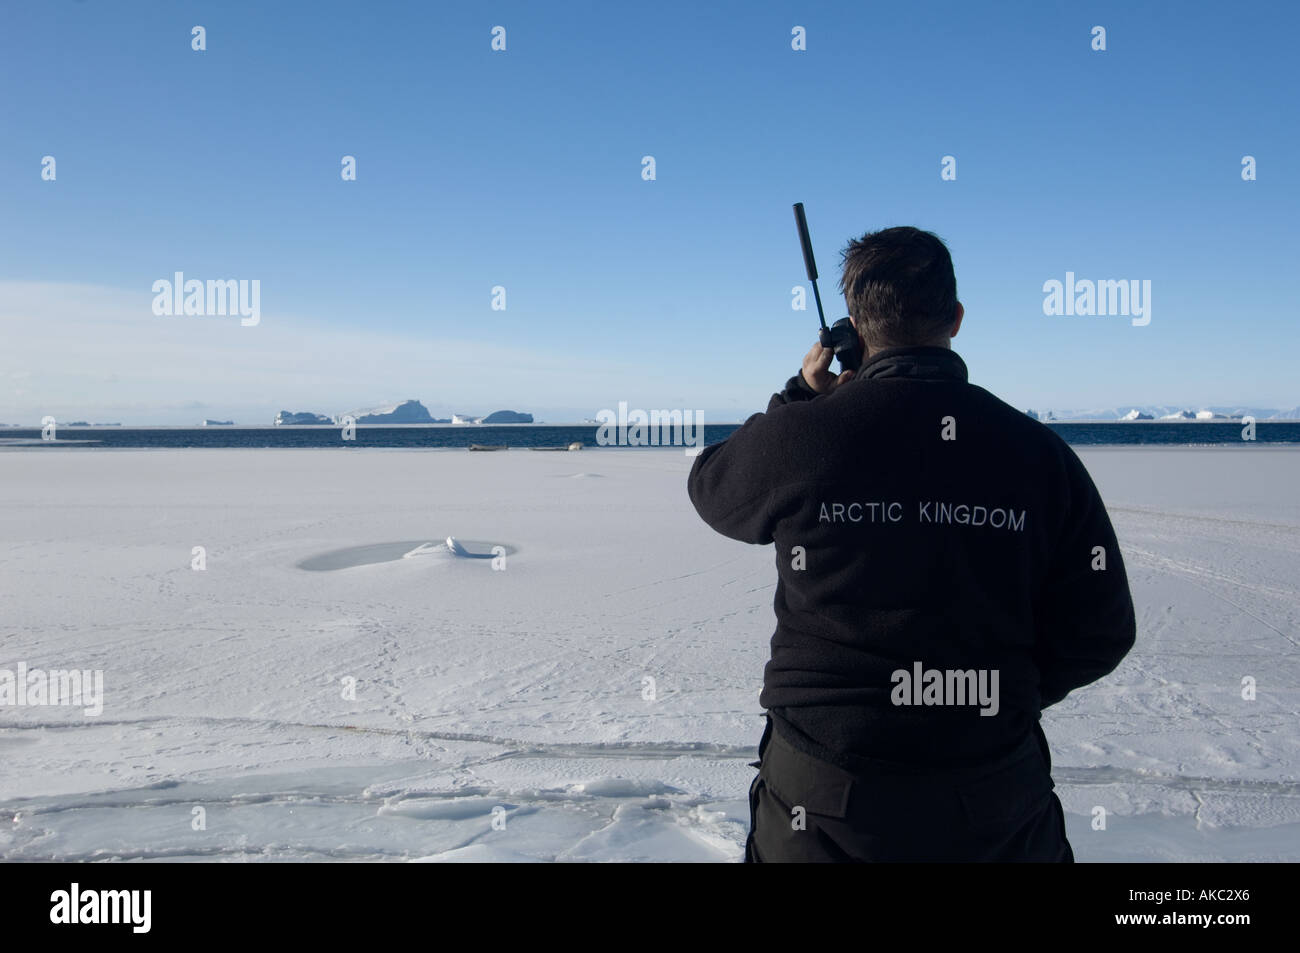 Qaanaaq Greenland Qaanaaq Greenland Using iridium satellite phone in the high Arctic Stock Photo